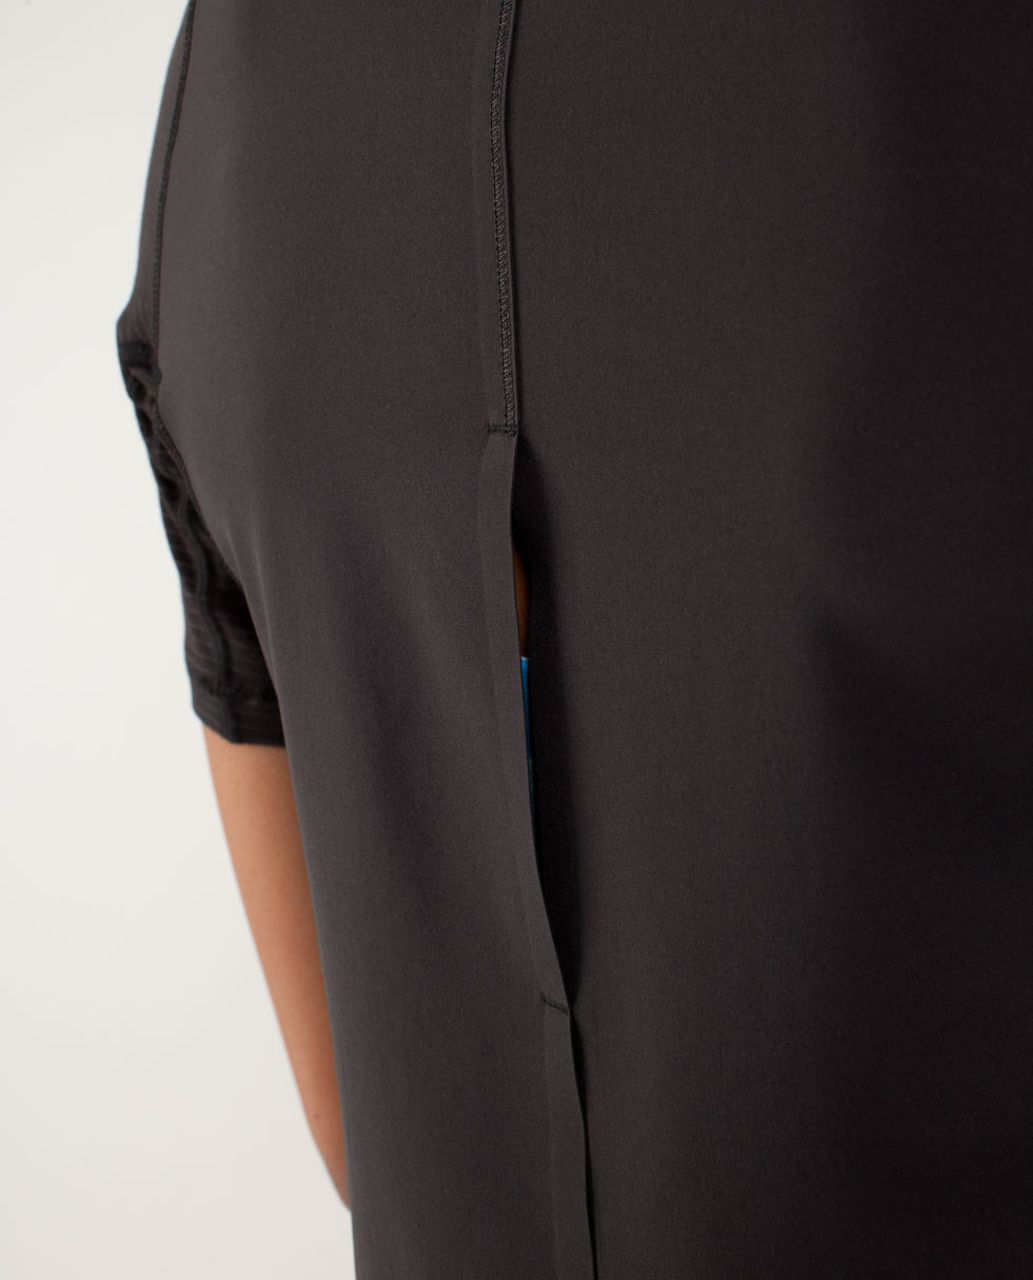 Lululemon Run:  Silver Lining Short Sleeve - Black